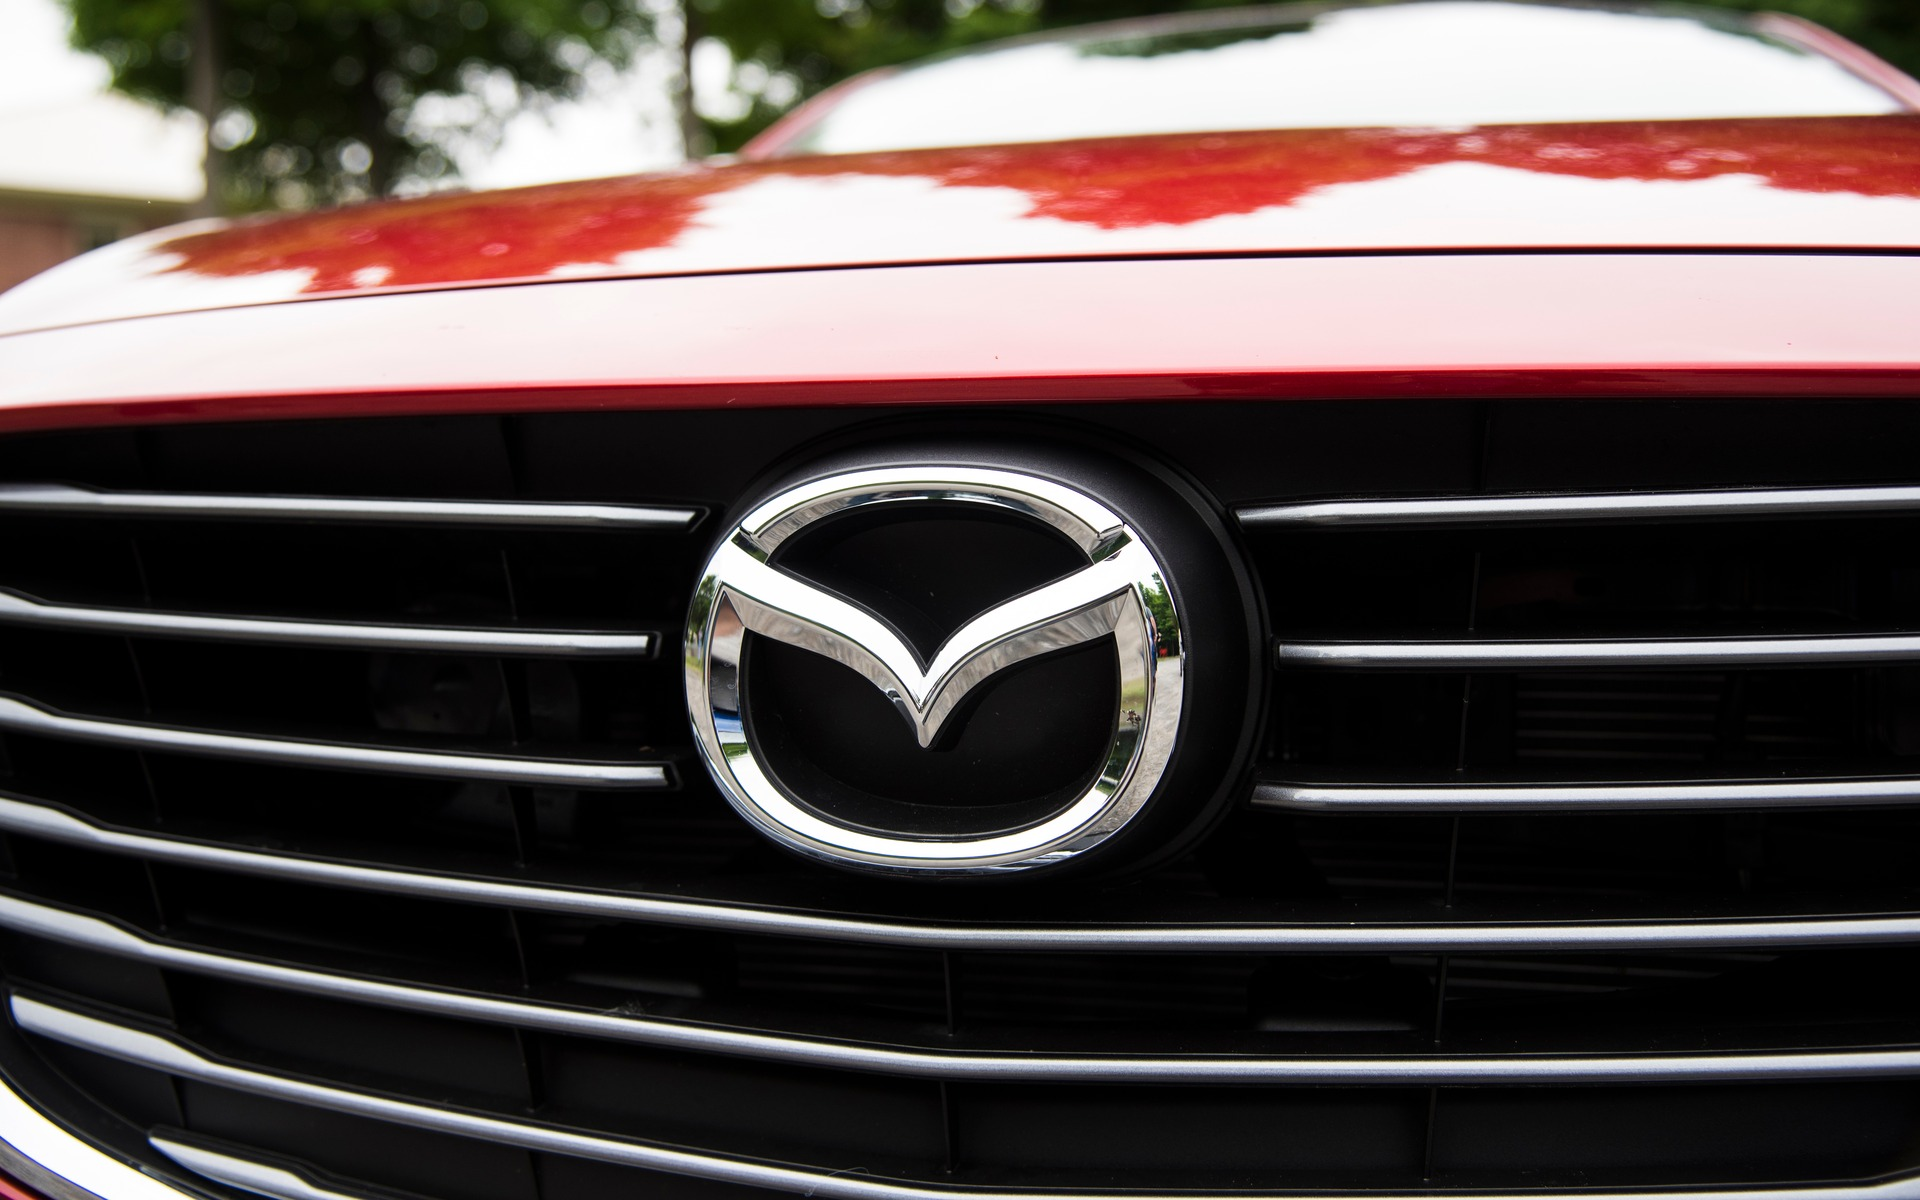 Mazda, Toyota Select Alabama For New U.S. Auto Manufacturing Plant